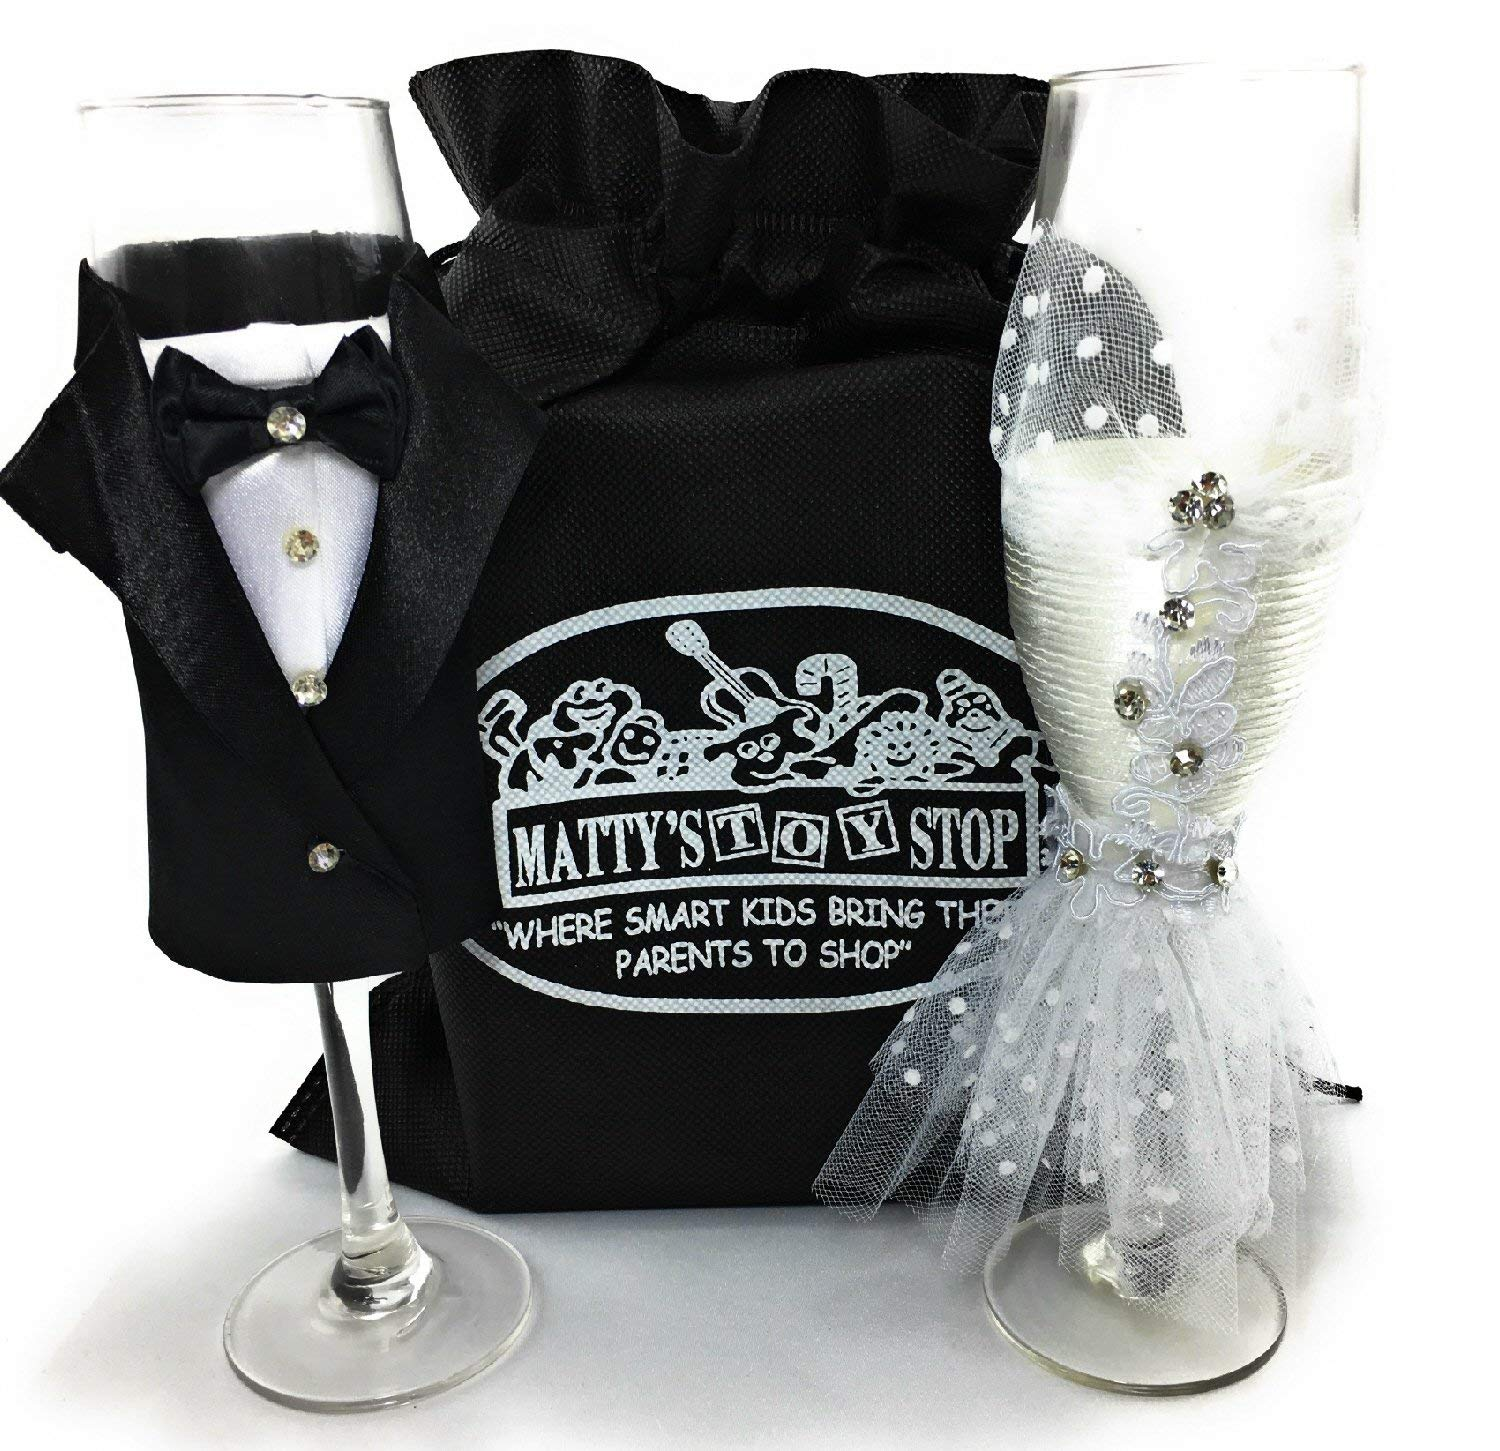 Bride and Groom Handmade Wedding Dress & Tuxedo Champagne Flute Glasses Gift Set Bundle with Exclusive Matty's Toy Stop Storage Bag - Perfect for Wedding, Bridal Shower, Engagement & So Much More.